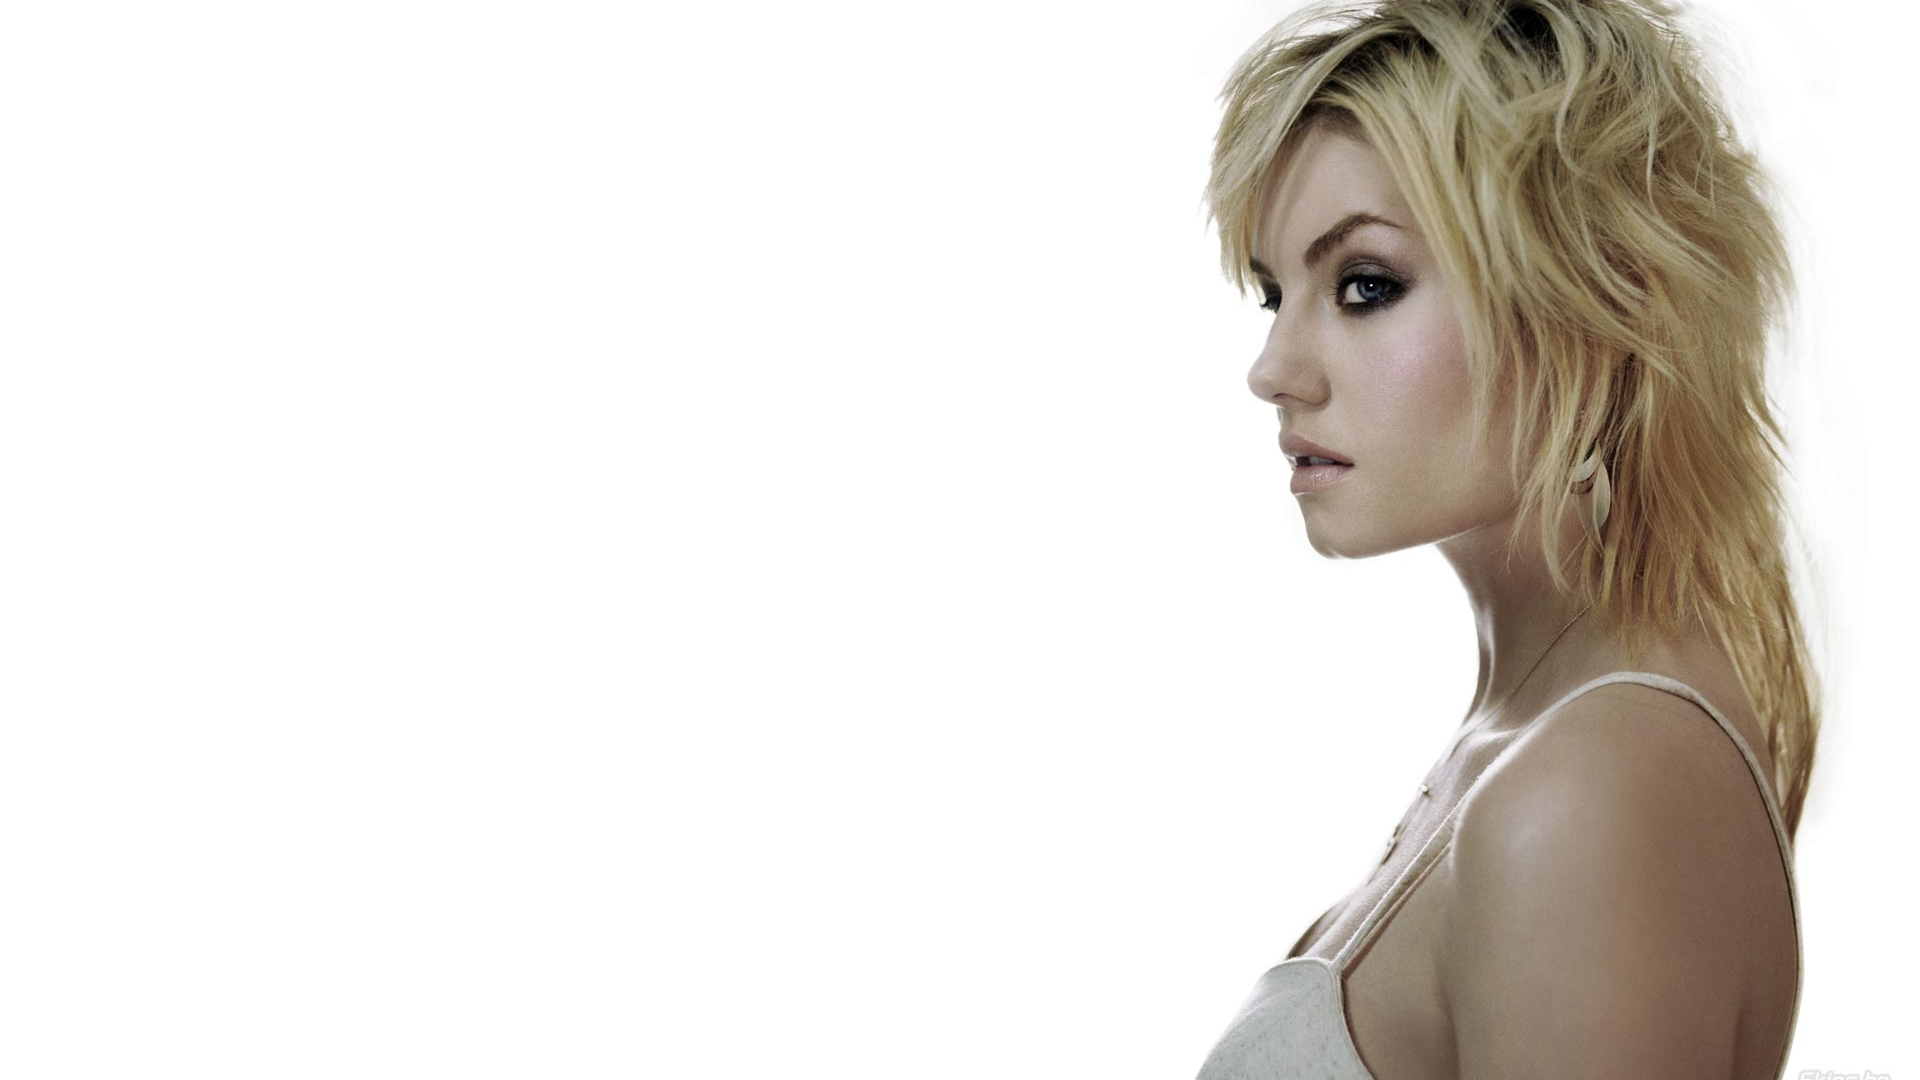 Elisha Cuthbert Hd Hd Wallpaper 1080p Joker Wallpaper